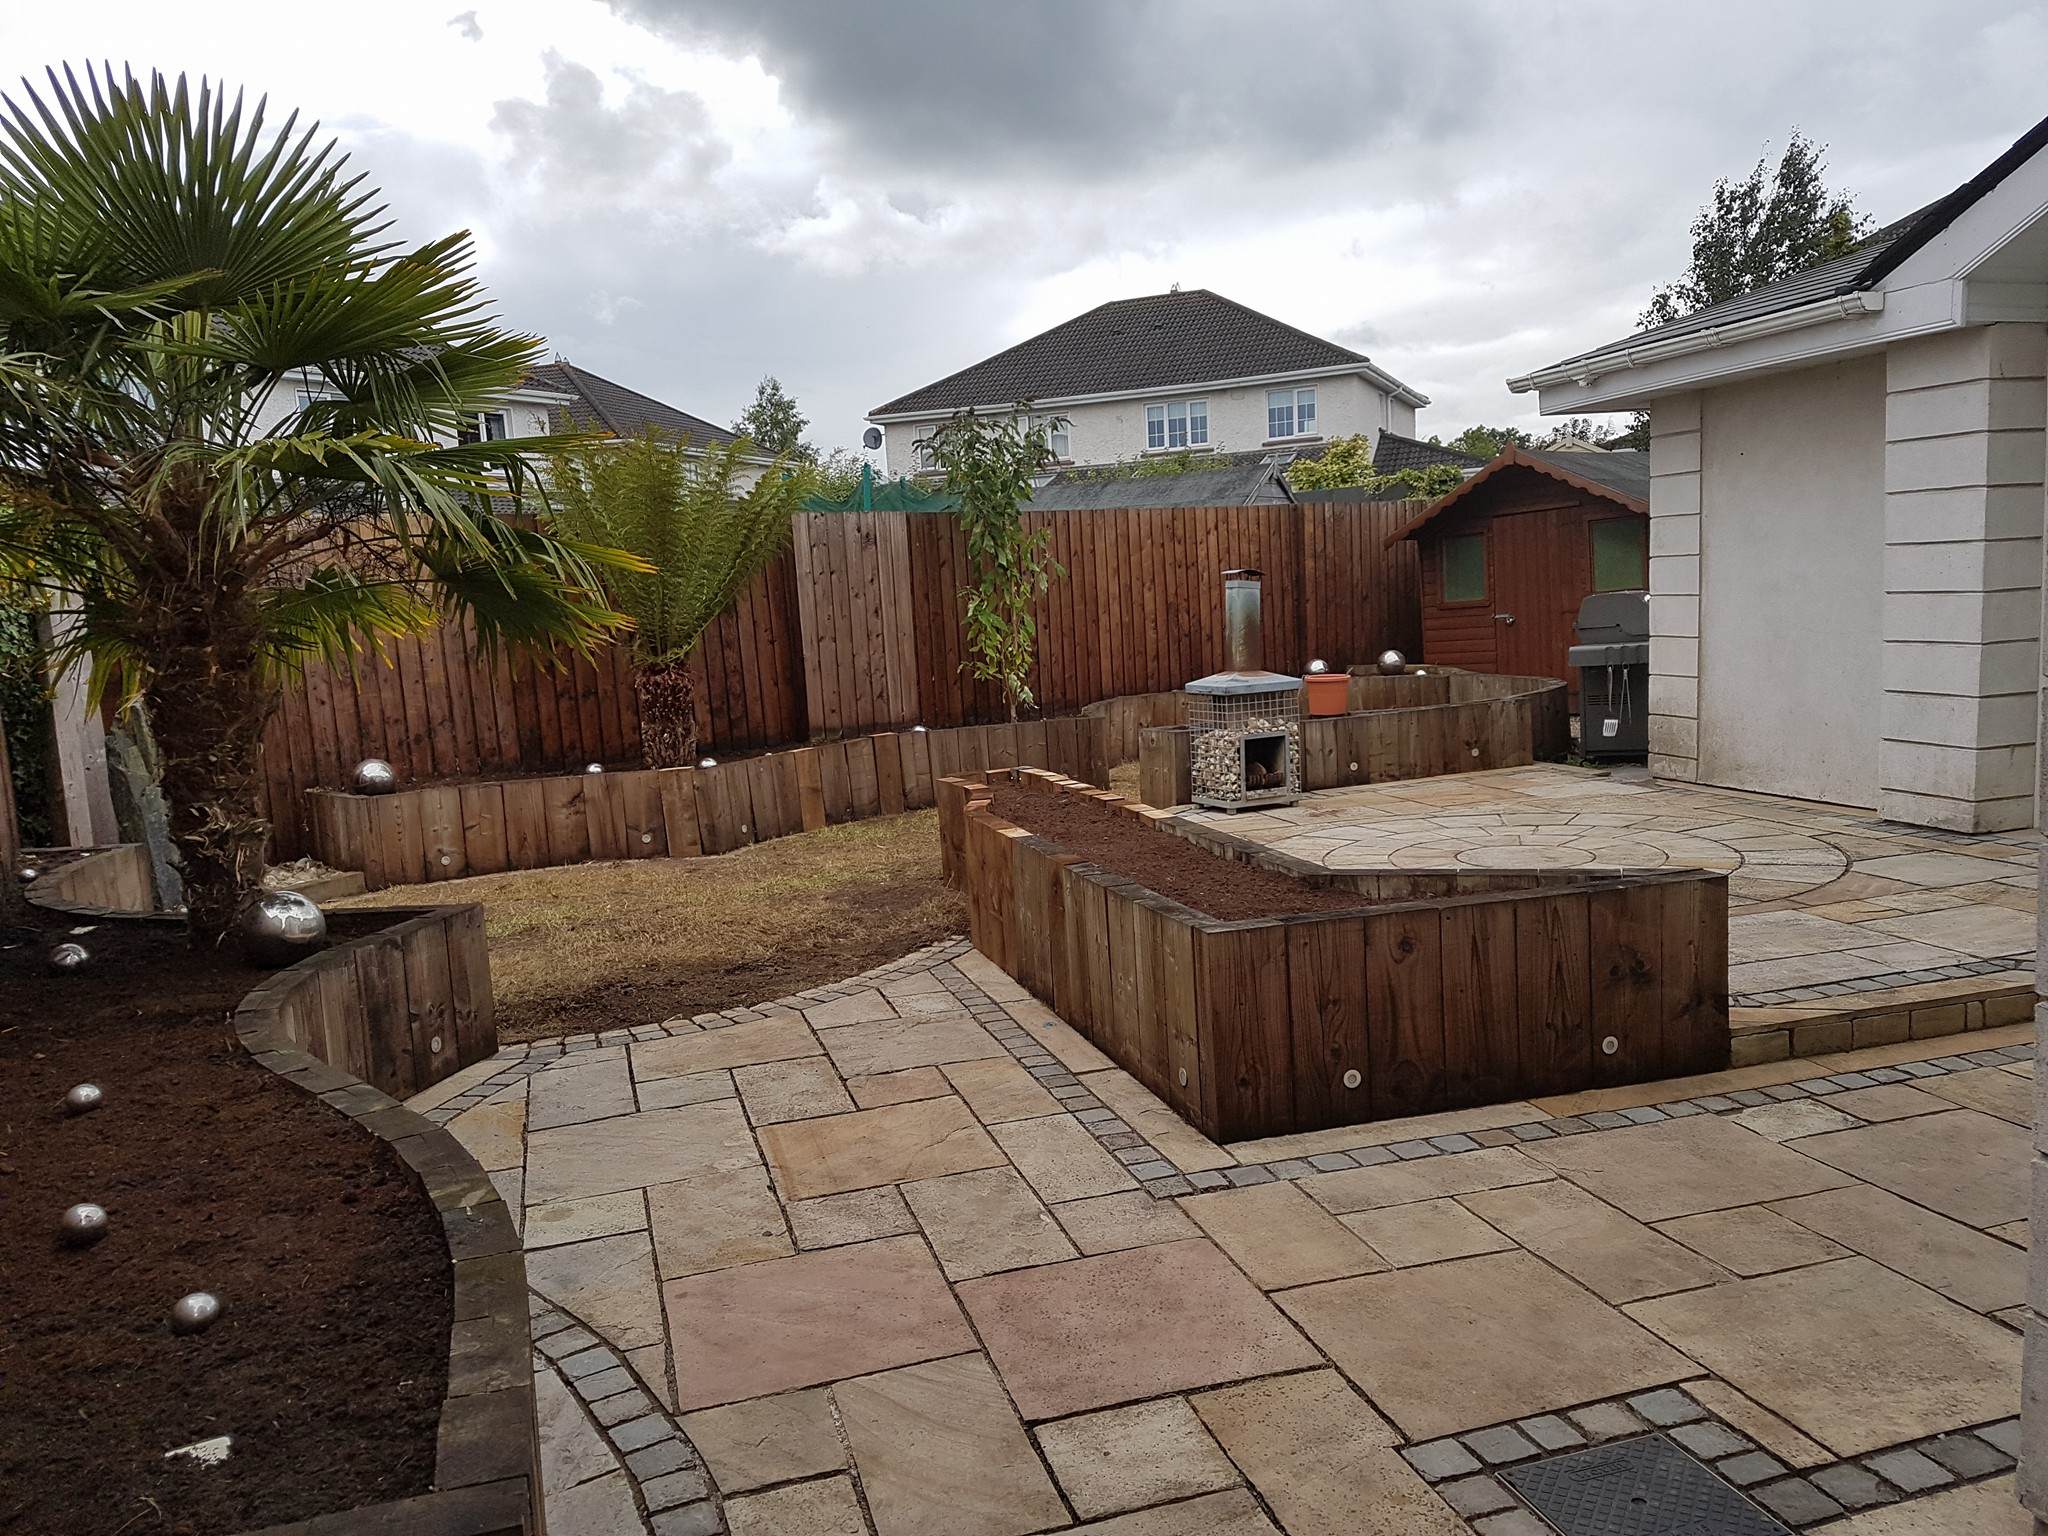 Dublin Landscaping & Gardening Company, Green Team Launches New Website to Improve Customer Relationship in Dublin, Ireland 1